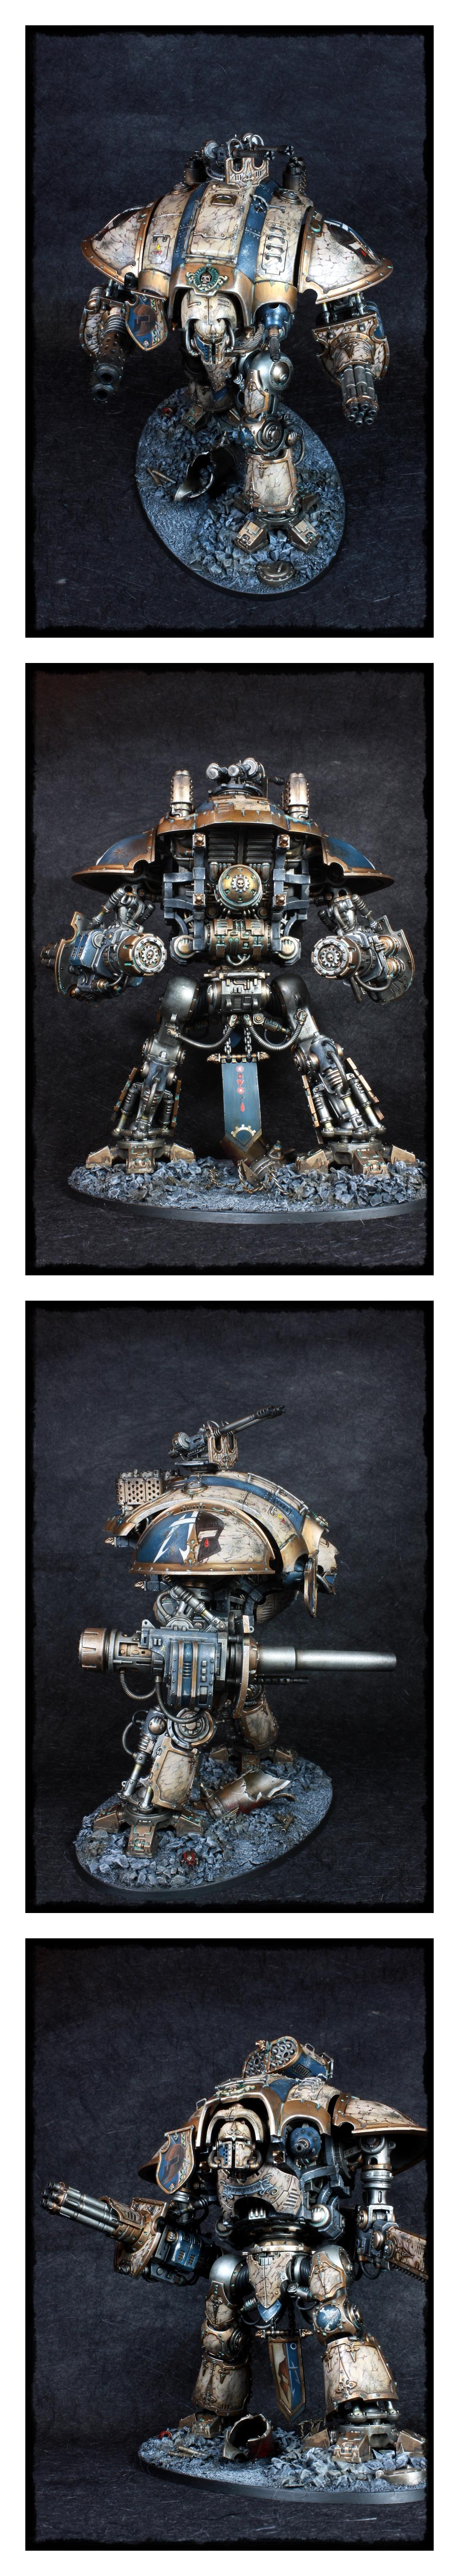 'the Orphan's Wrath', Achlys Iii, Freeblade, Imperial Knight, Knight Titan, Magnet, Marble, Sarpedon, Warhammer 40,000